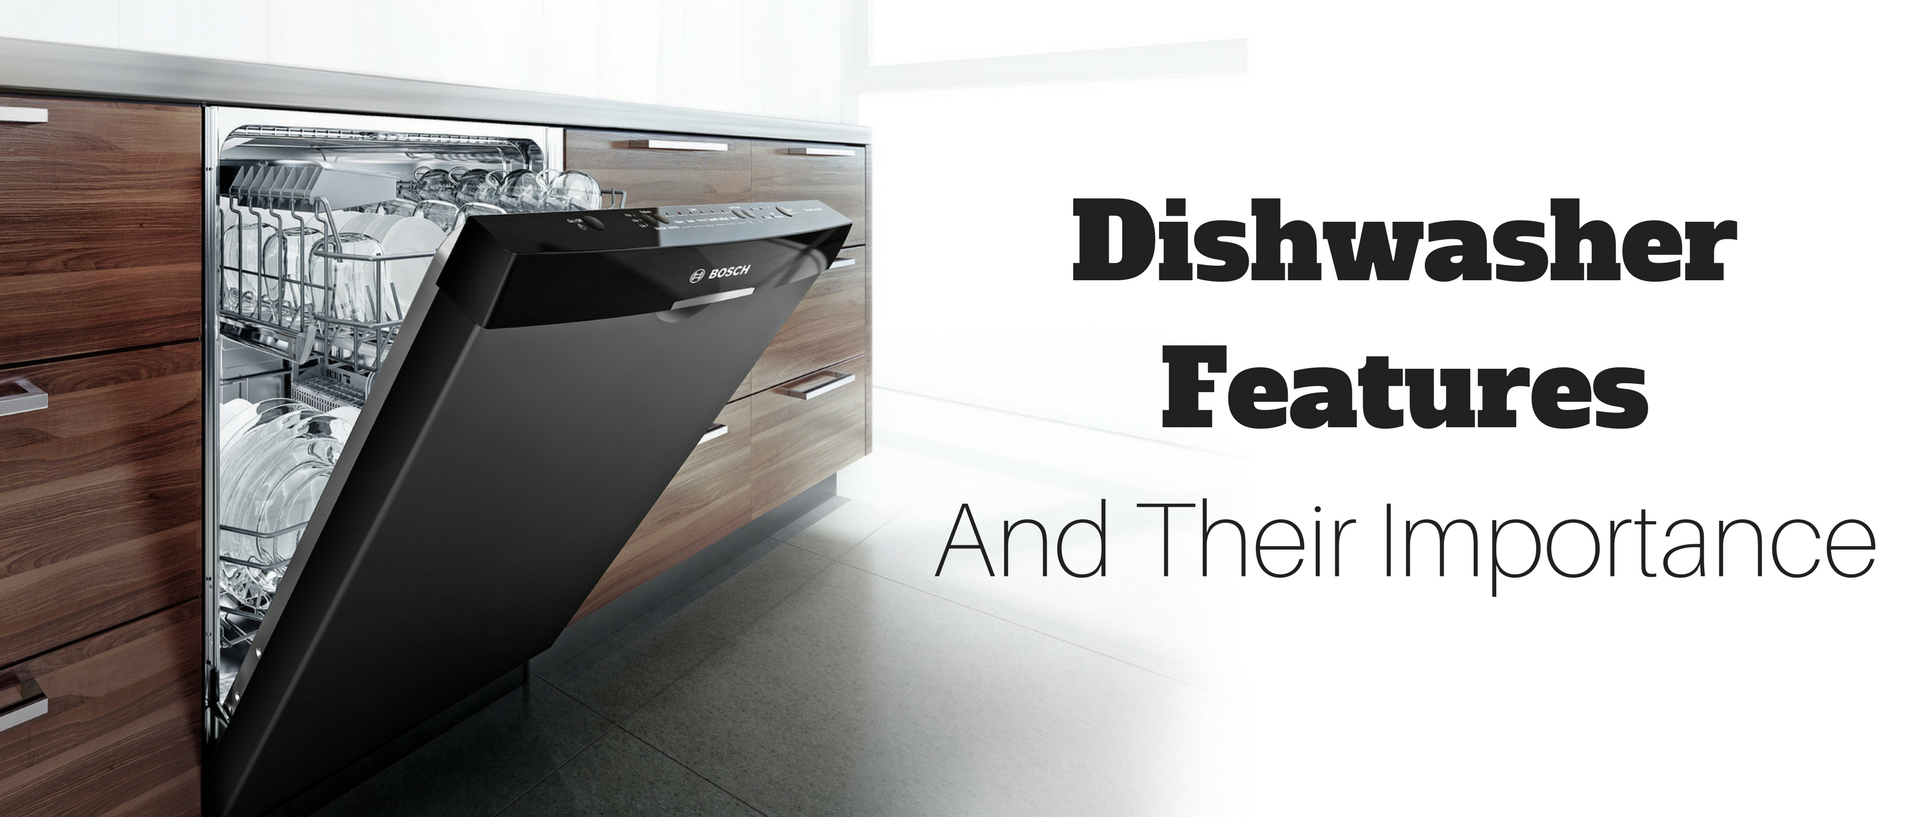 built-in dishwasher integrated look